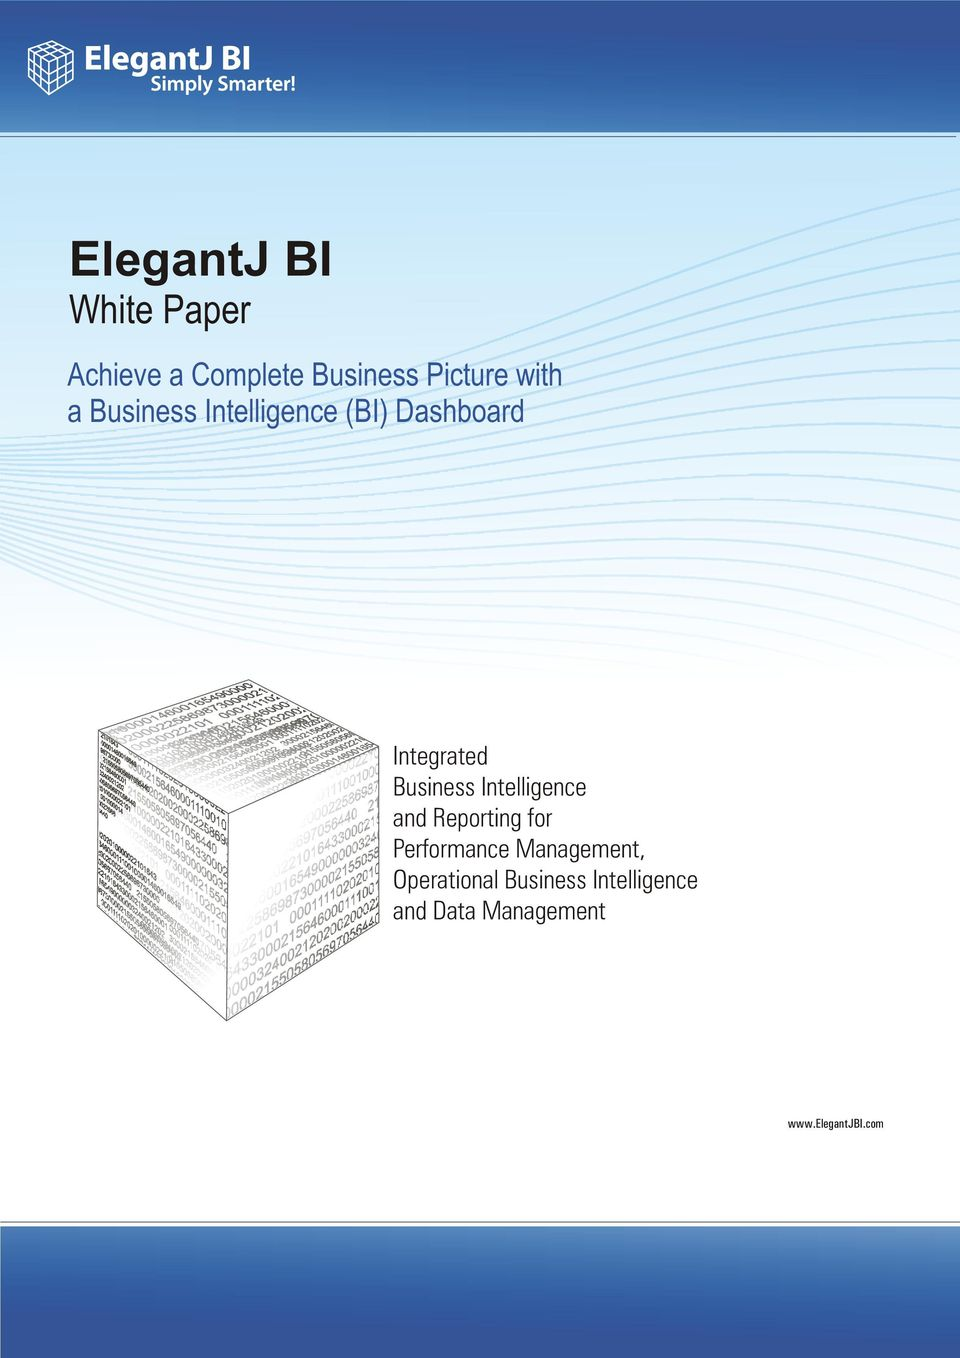 Business Intelligence and Reporting for Performance